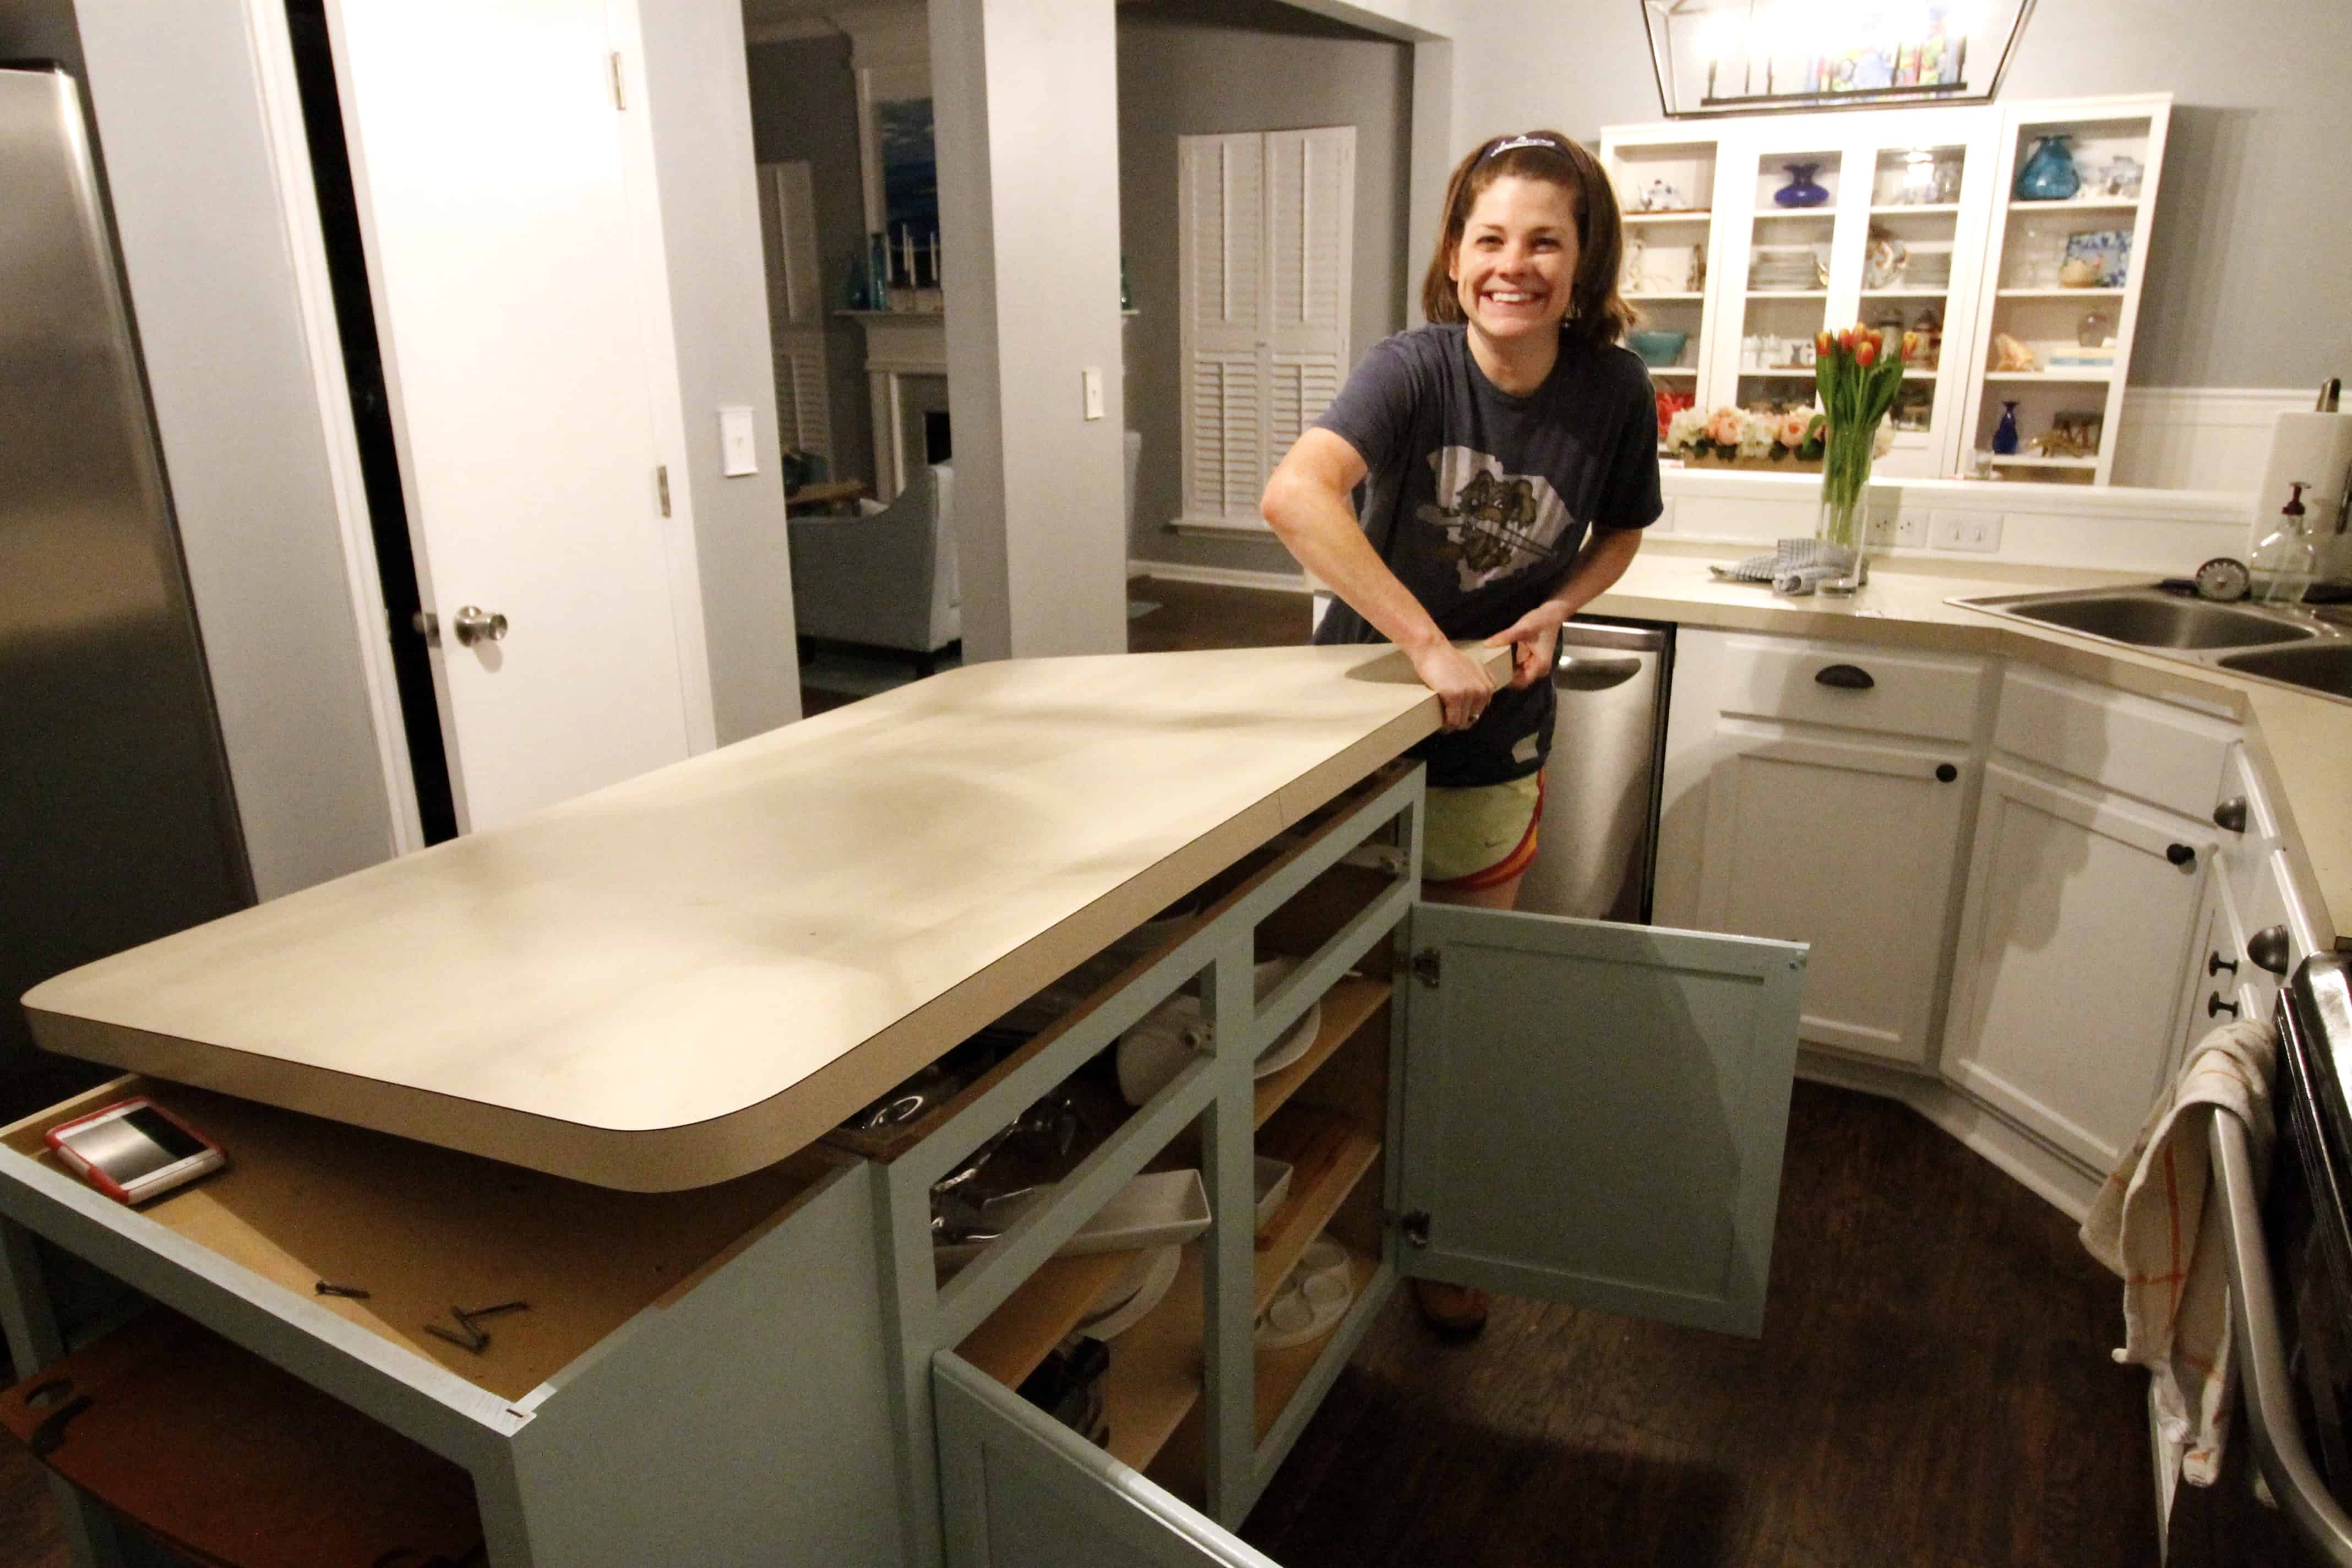 How to Remove a Countertop